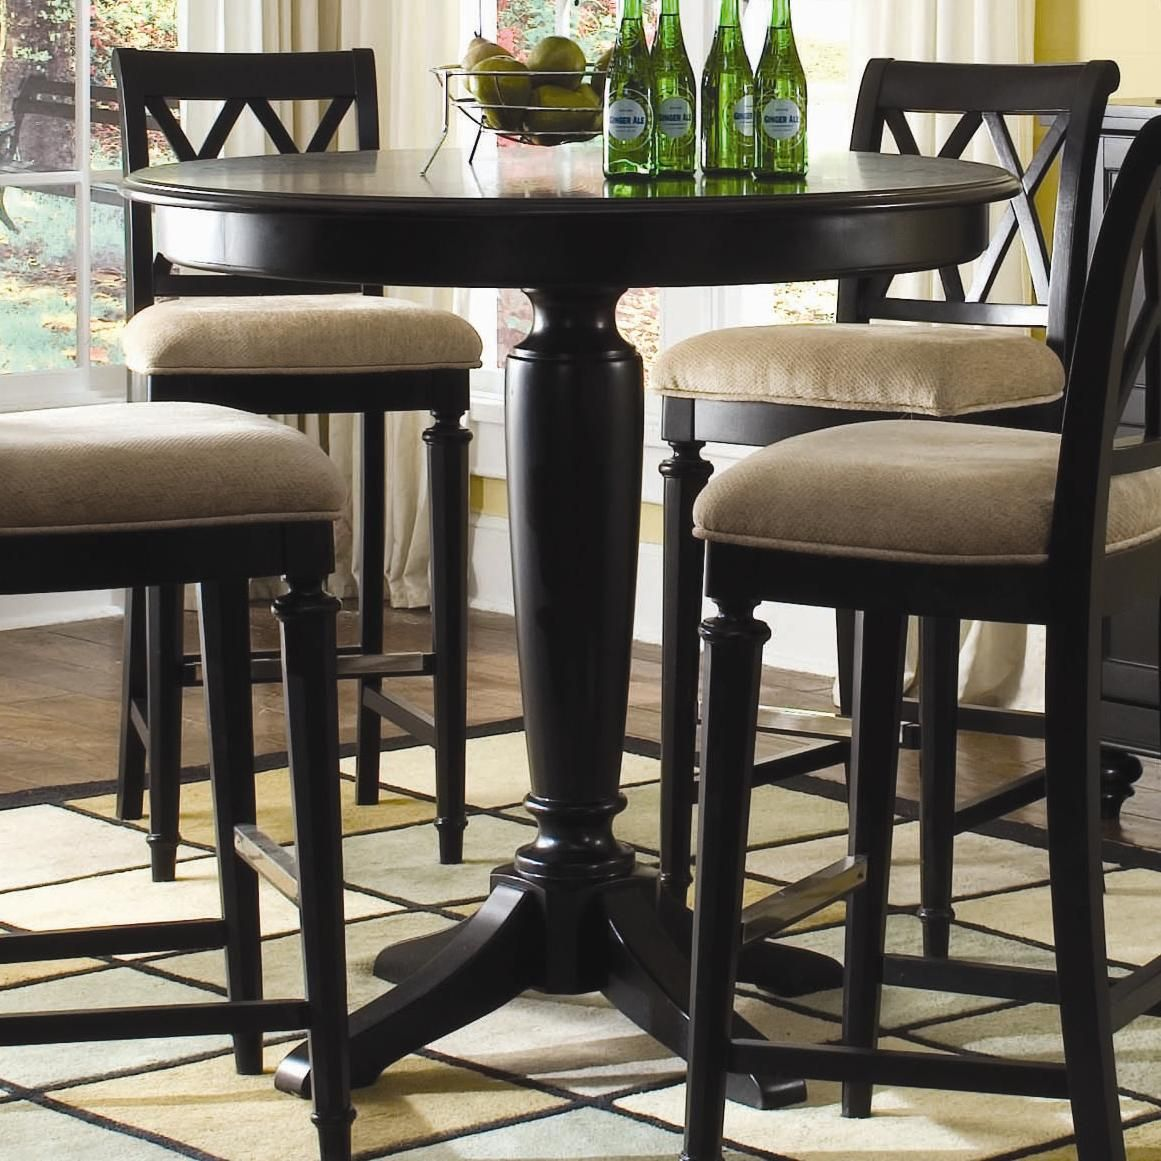 This Counter Height Bar Table Has Turned And Tapered Wood Legs That Create A Center Shelv Bar Height Dining Table Pub Table And Chairs Dining Table Set Designs